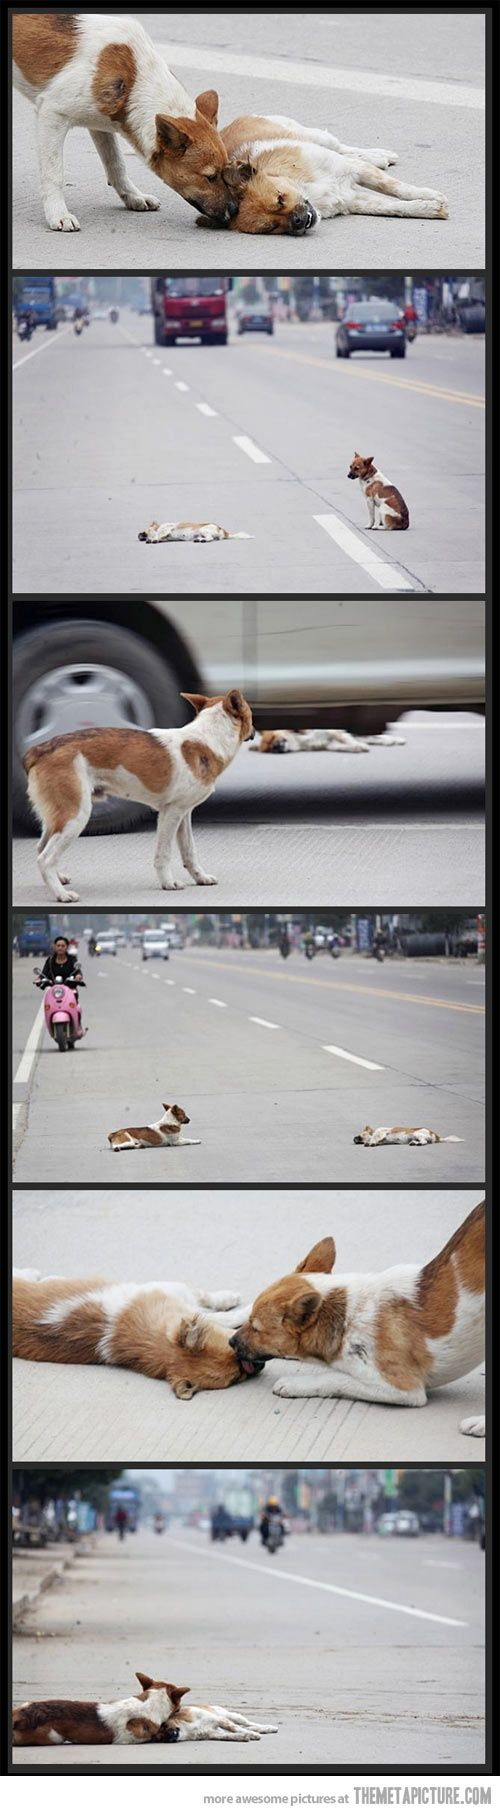 Dogs are amazing… this is sad. and why the hell was the person just taking pictures?